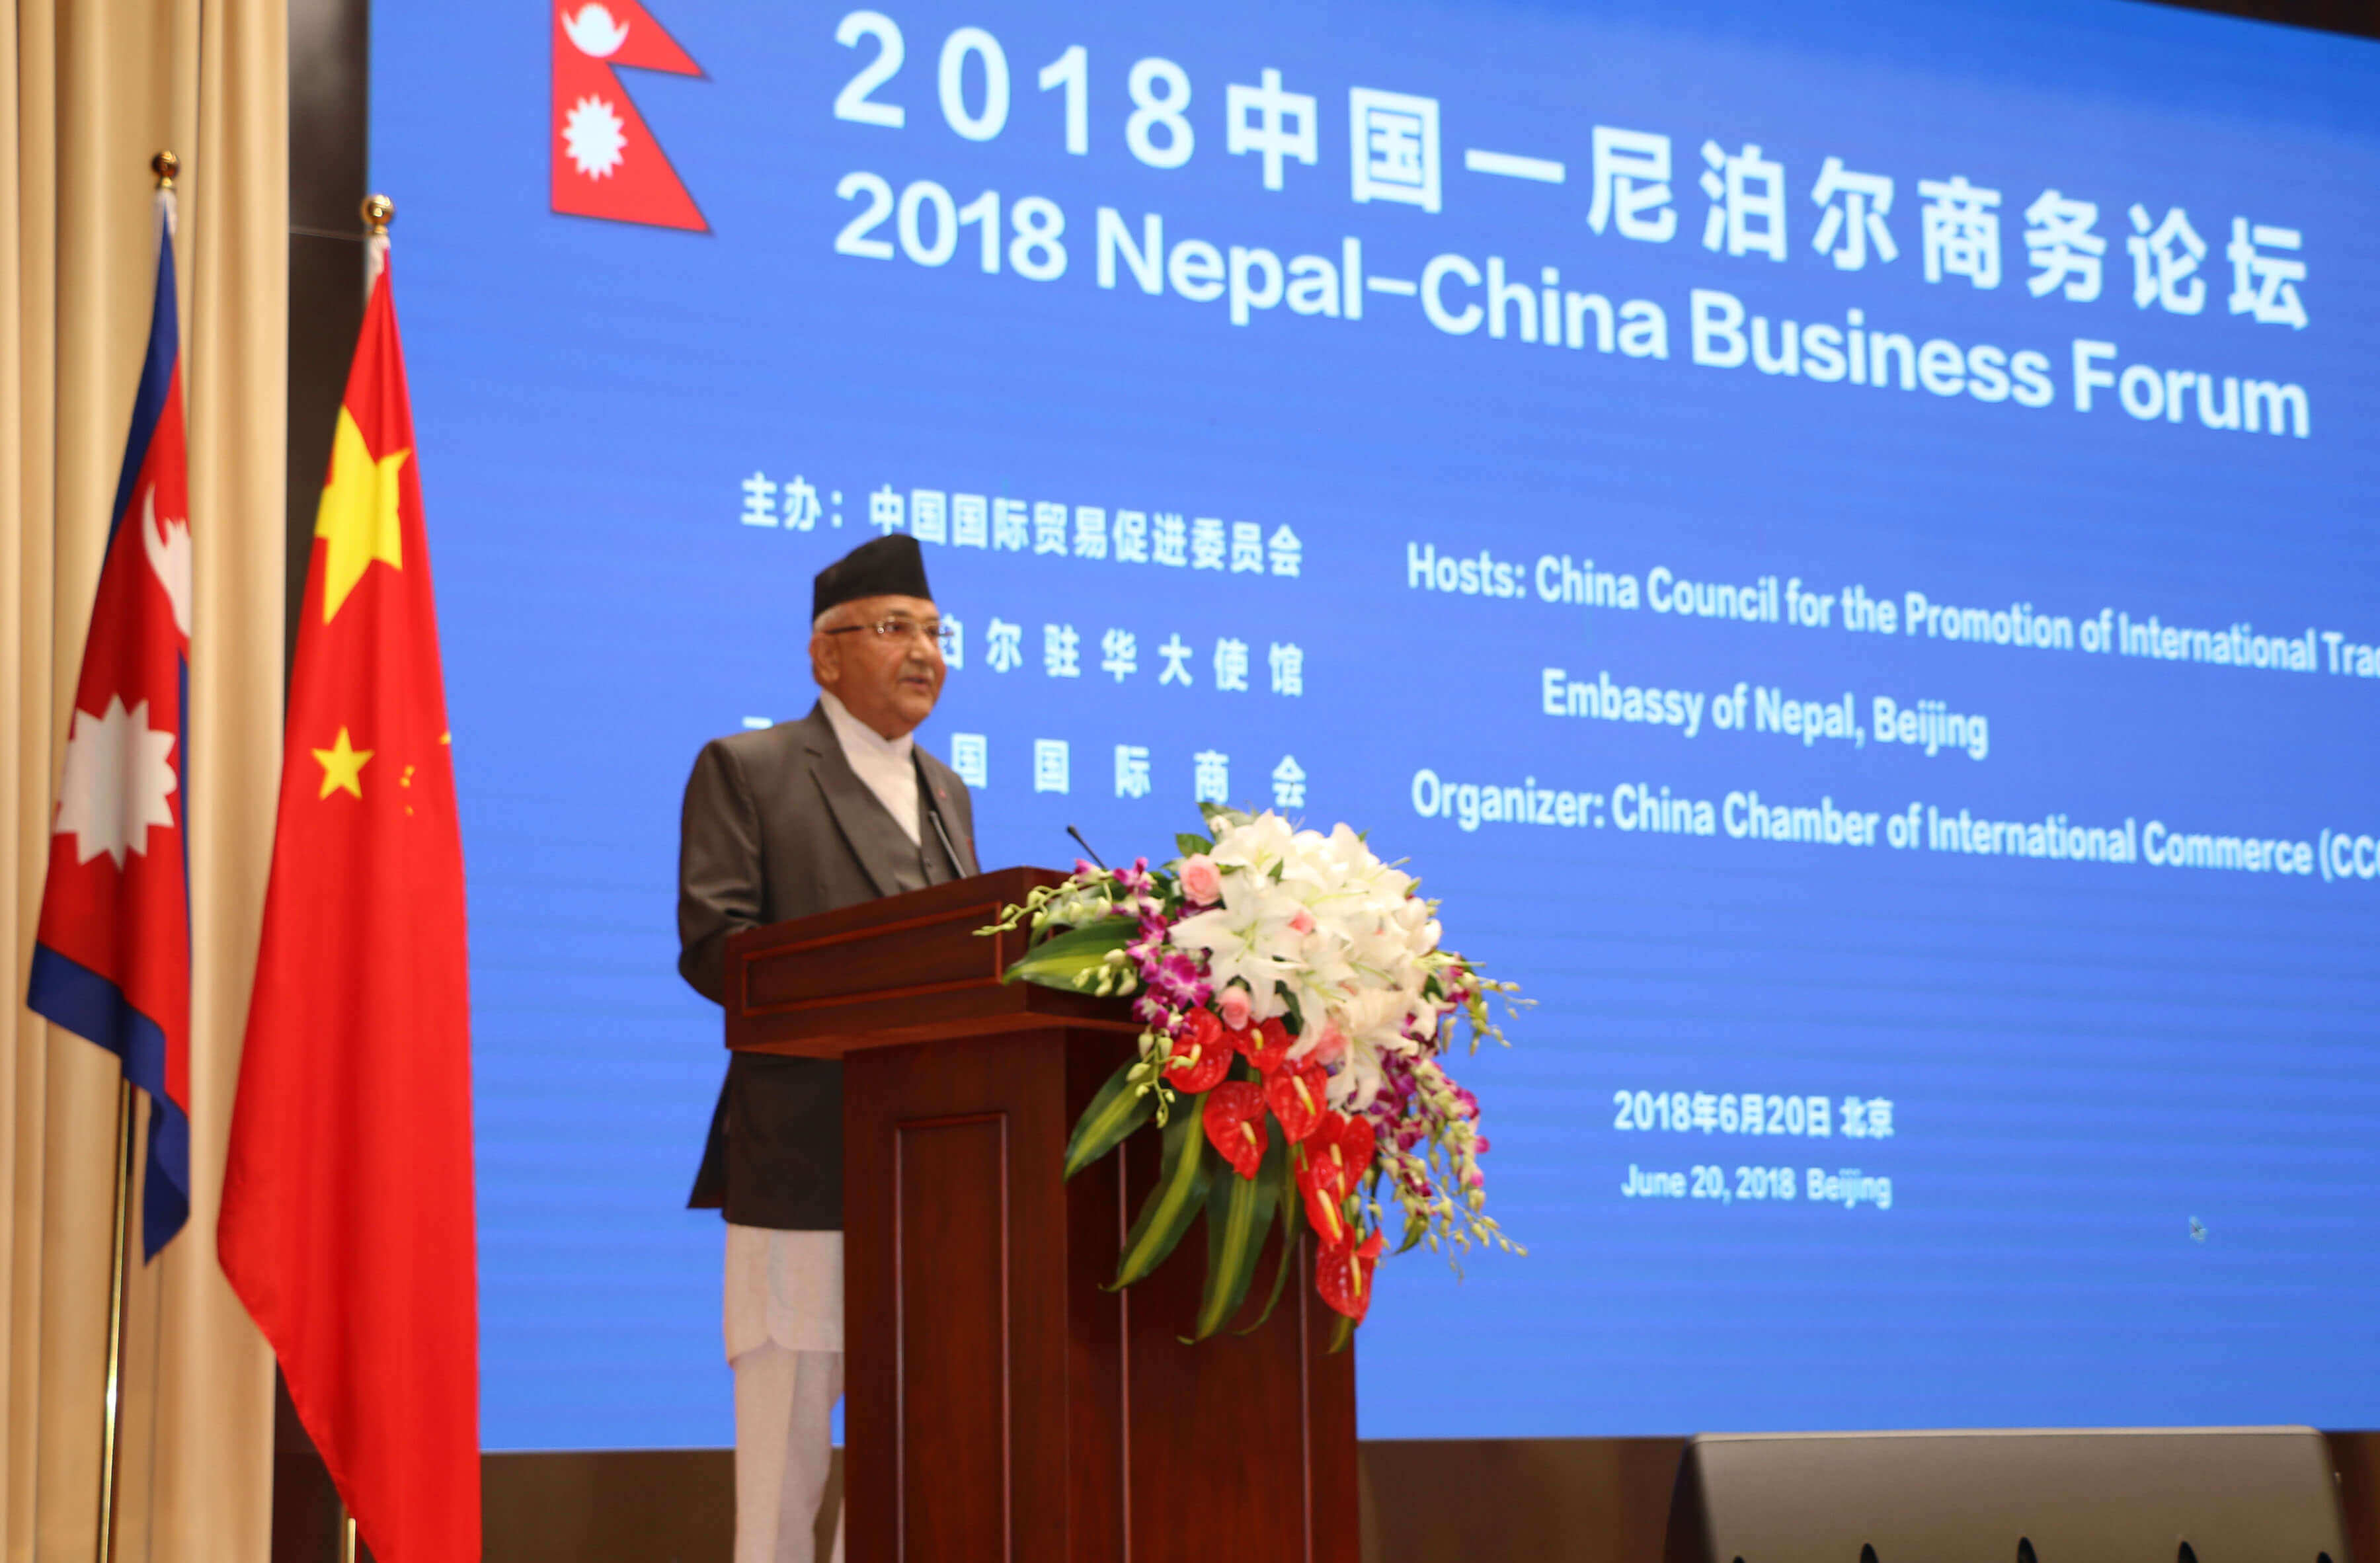 Prime Minister KP Oli addresses 2018 Nepal-China Business Forum in Beijing on Wednesday. Oli who is on a six-day state visit to China will pay a courtesy call on Chinese President Xi Jinping before holding a bilateral meeting with Chinese Premier Li Keqiang.